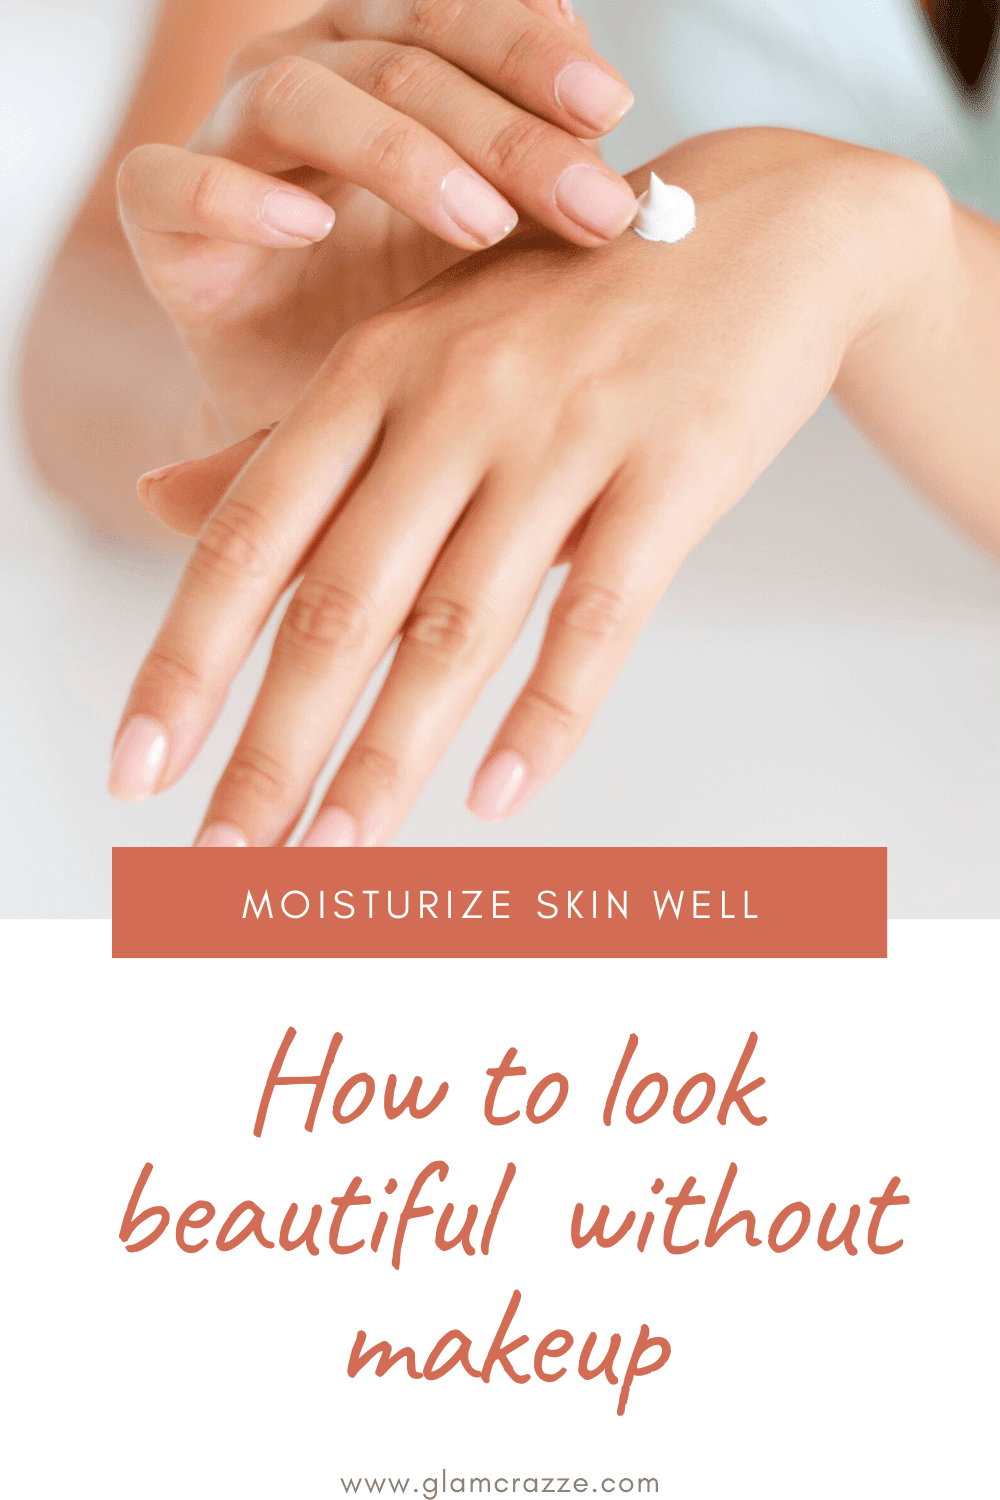 How to look beautiful without makeup while moisturizing skin